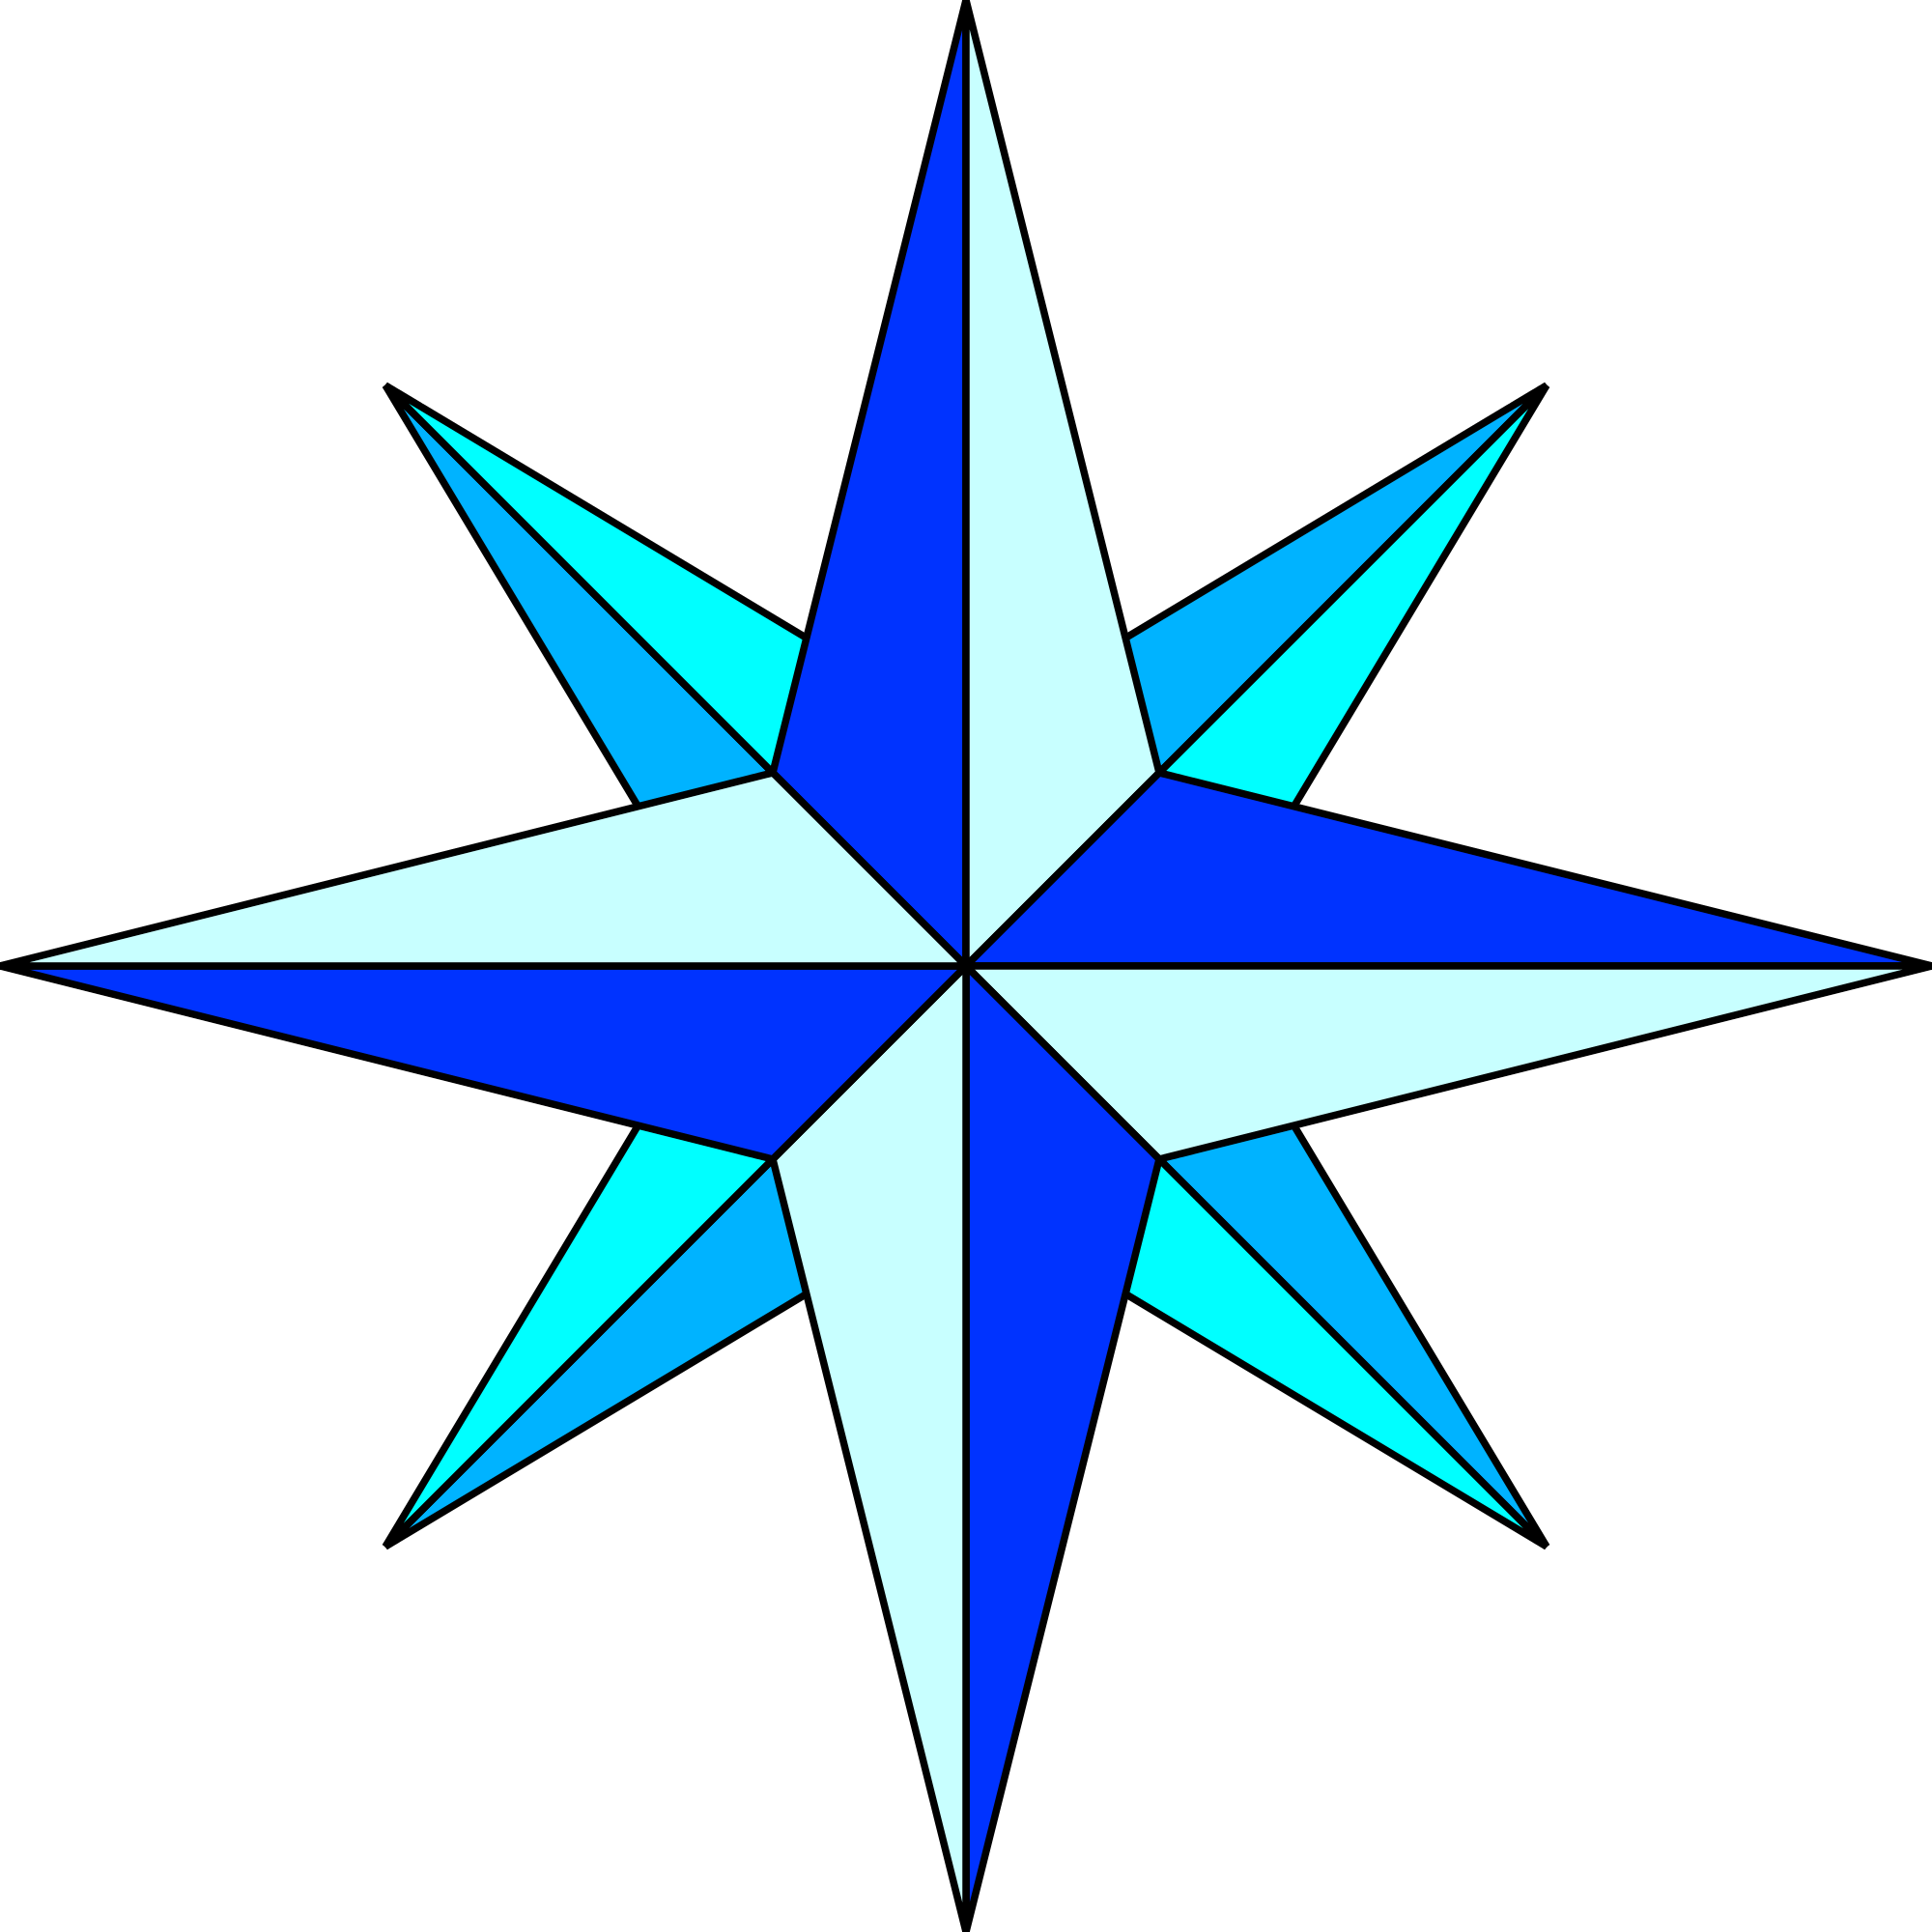 Stellar star clipart picture freeuse library File:Compass rose simple plain.svg - Wikimedia Commons picture freeuse library